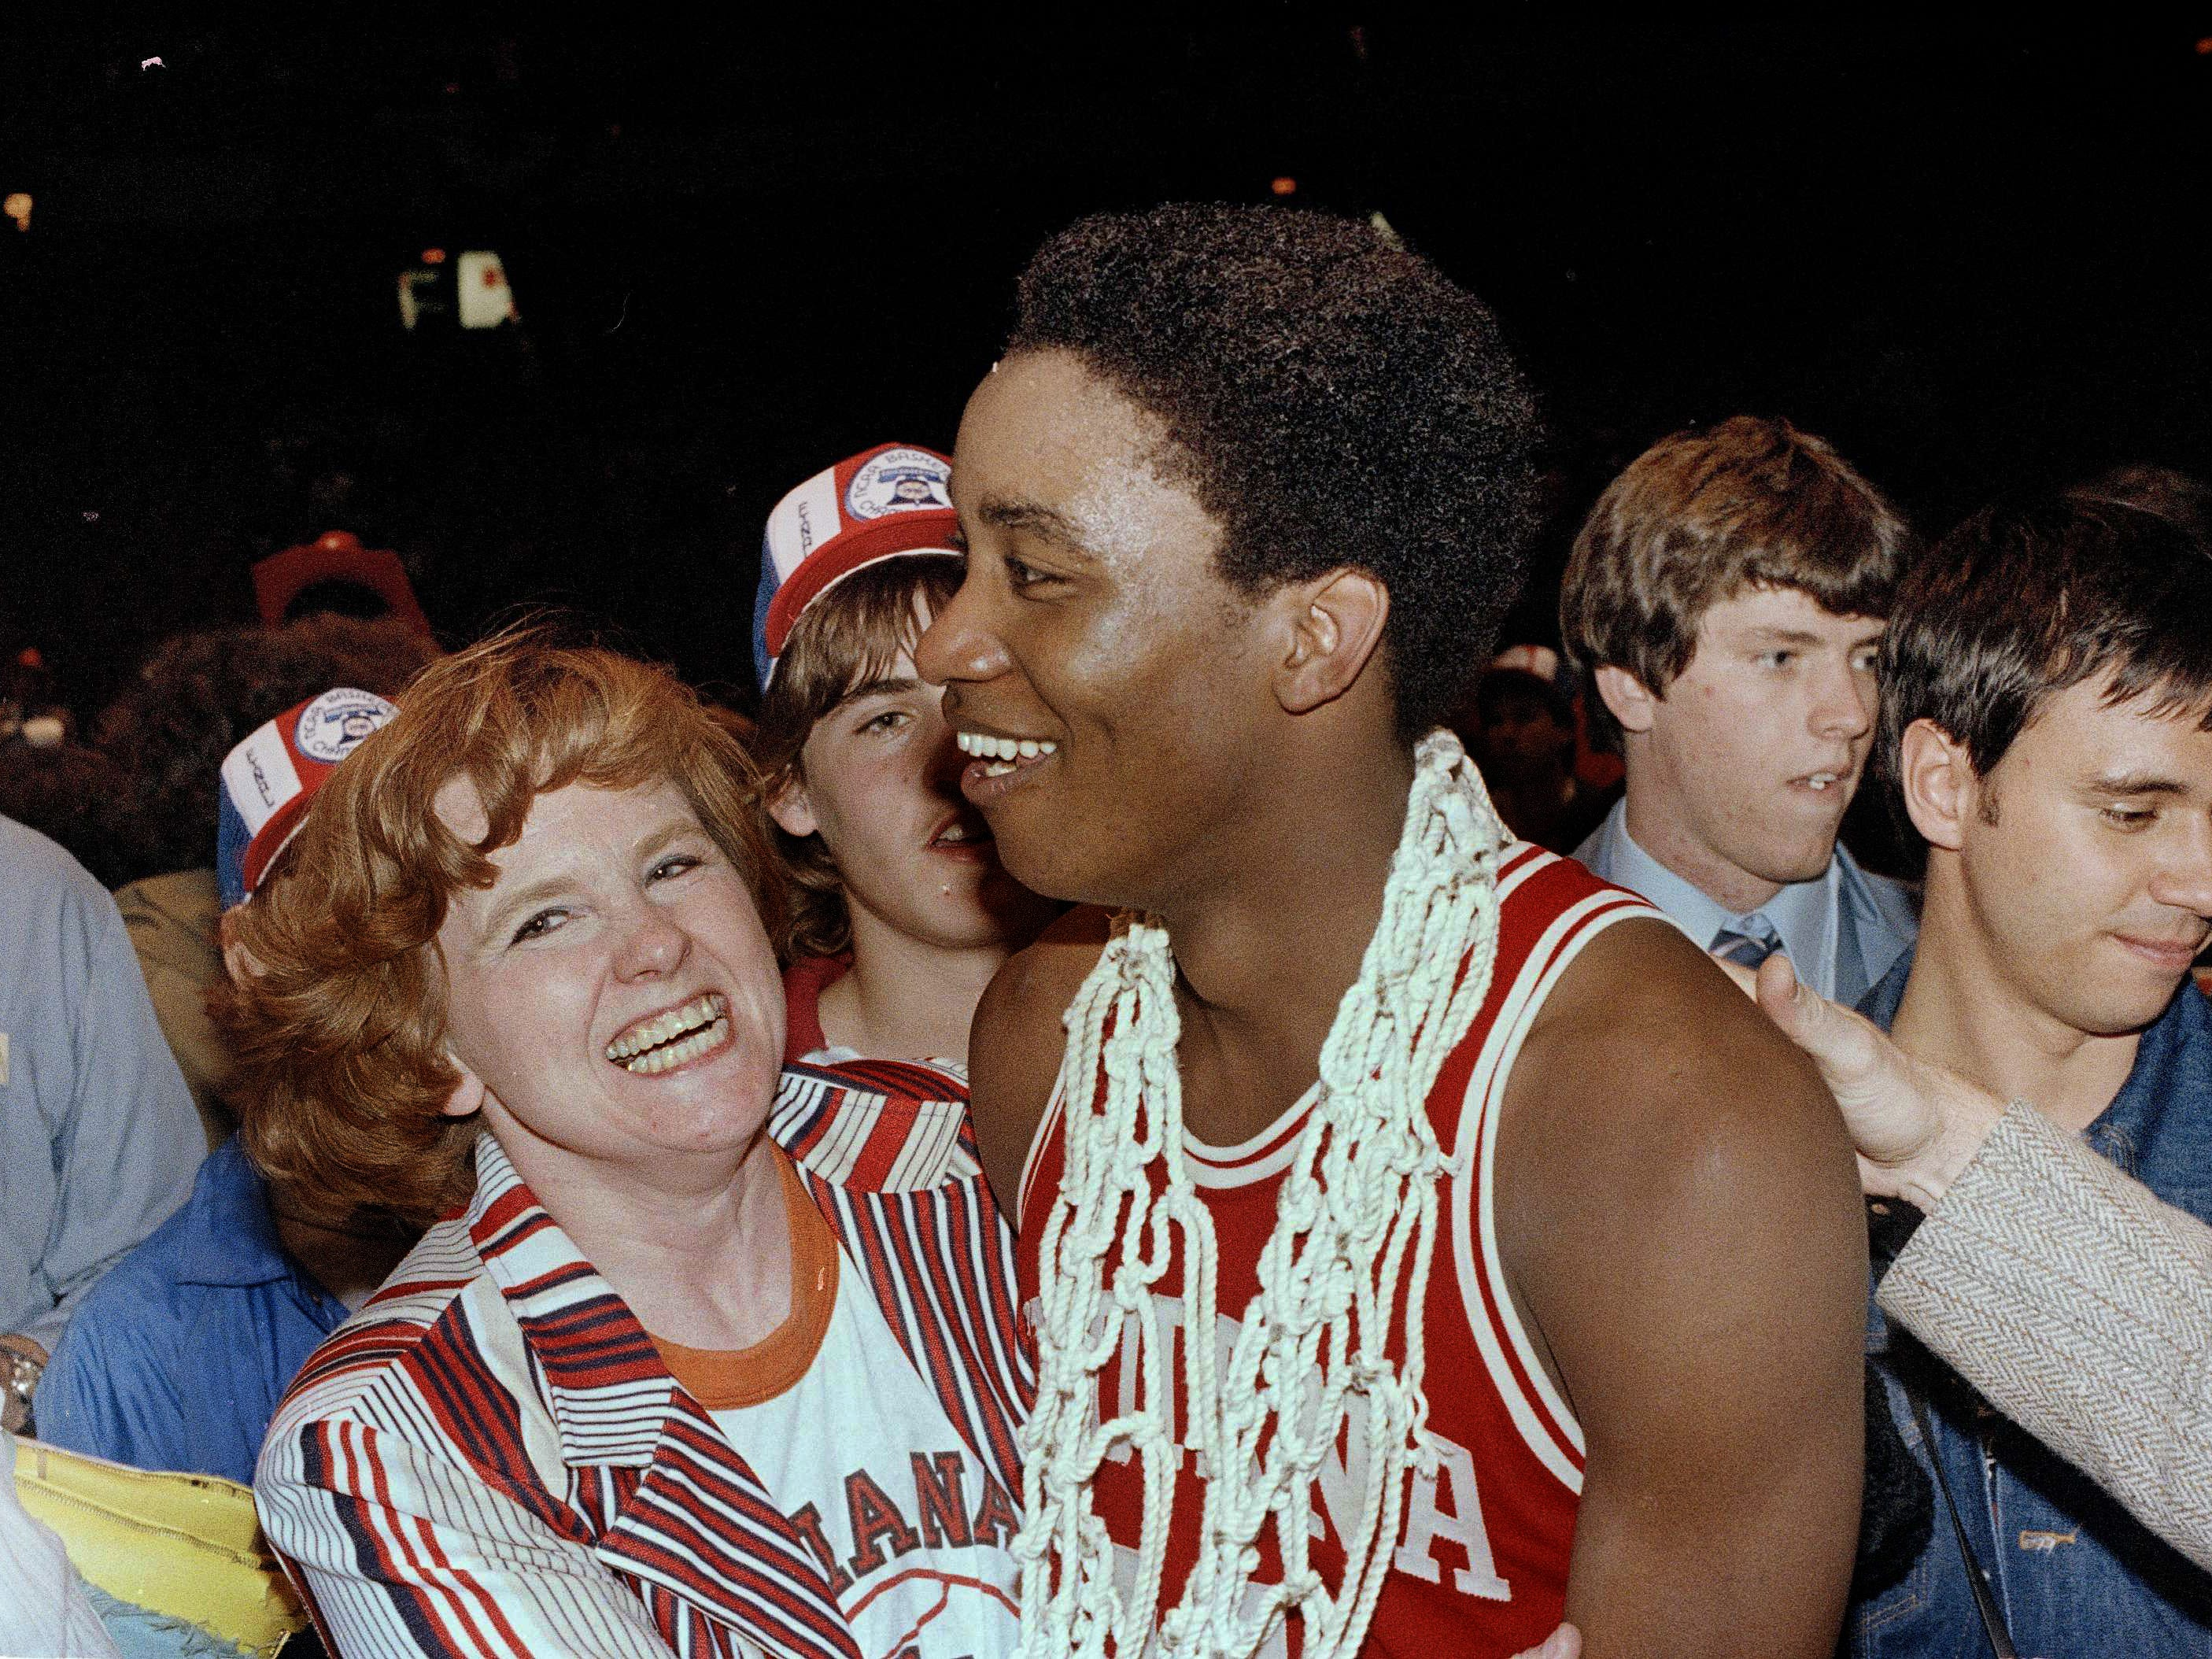 Isiah Thomas of Indiana University wears the net from the basket around his neck and is surrounded by fans after his team won over North Carolina, 63-50, in the final NCAA championship game, March 31, 1981. Thomas was declared MVP of the game in Philadelphia.